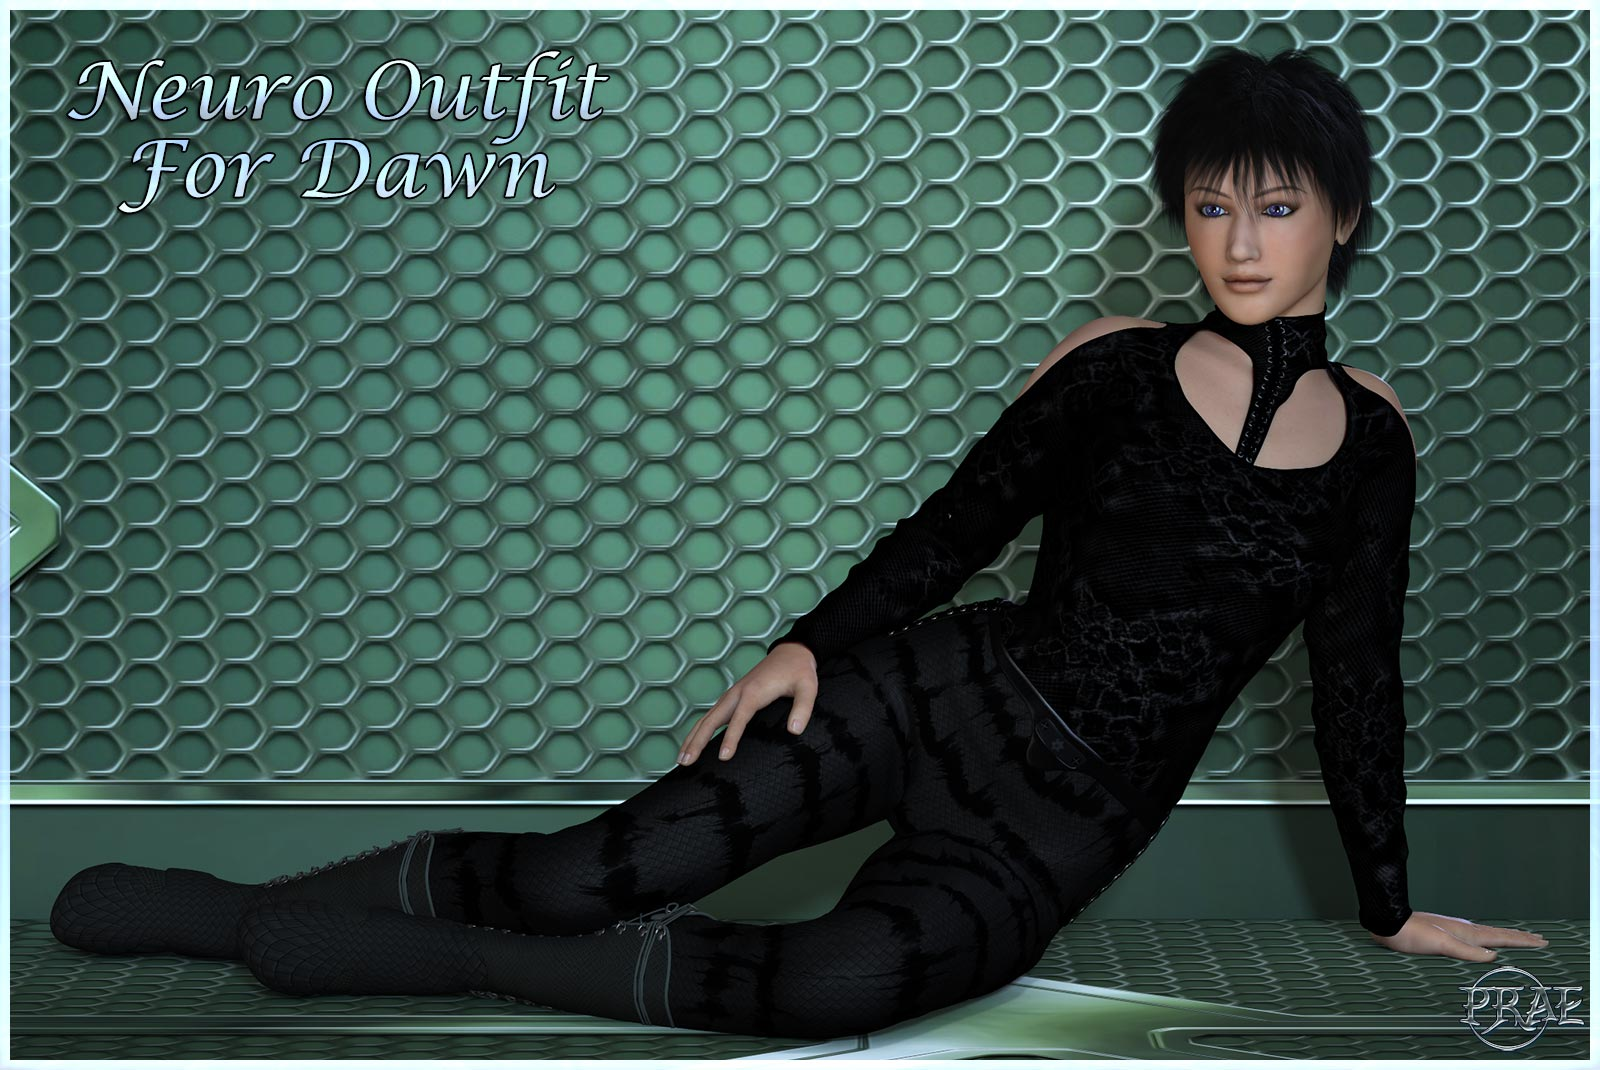 Neuro Outfit for Dawn